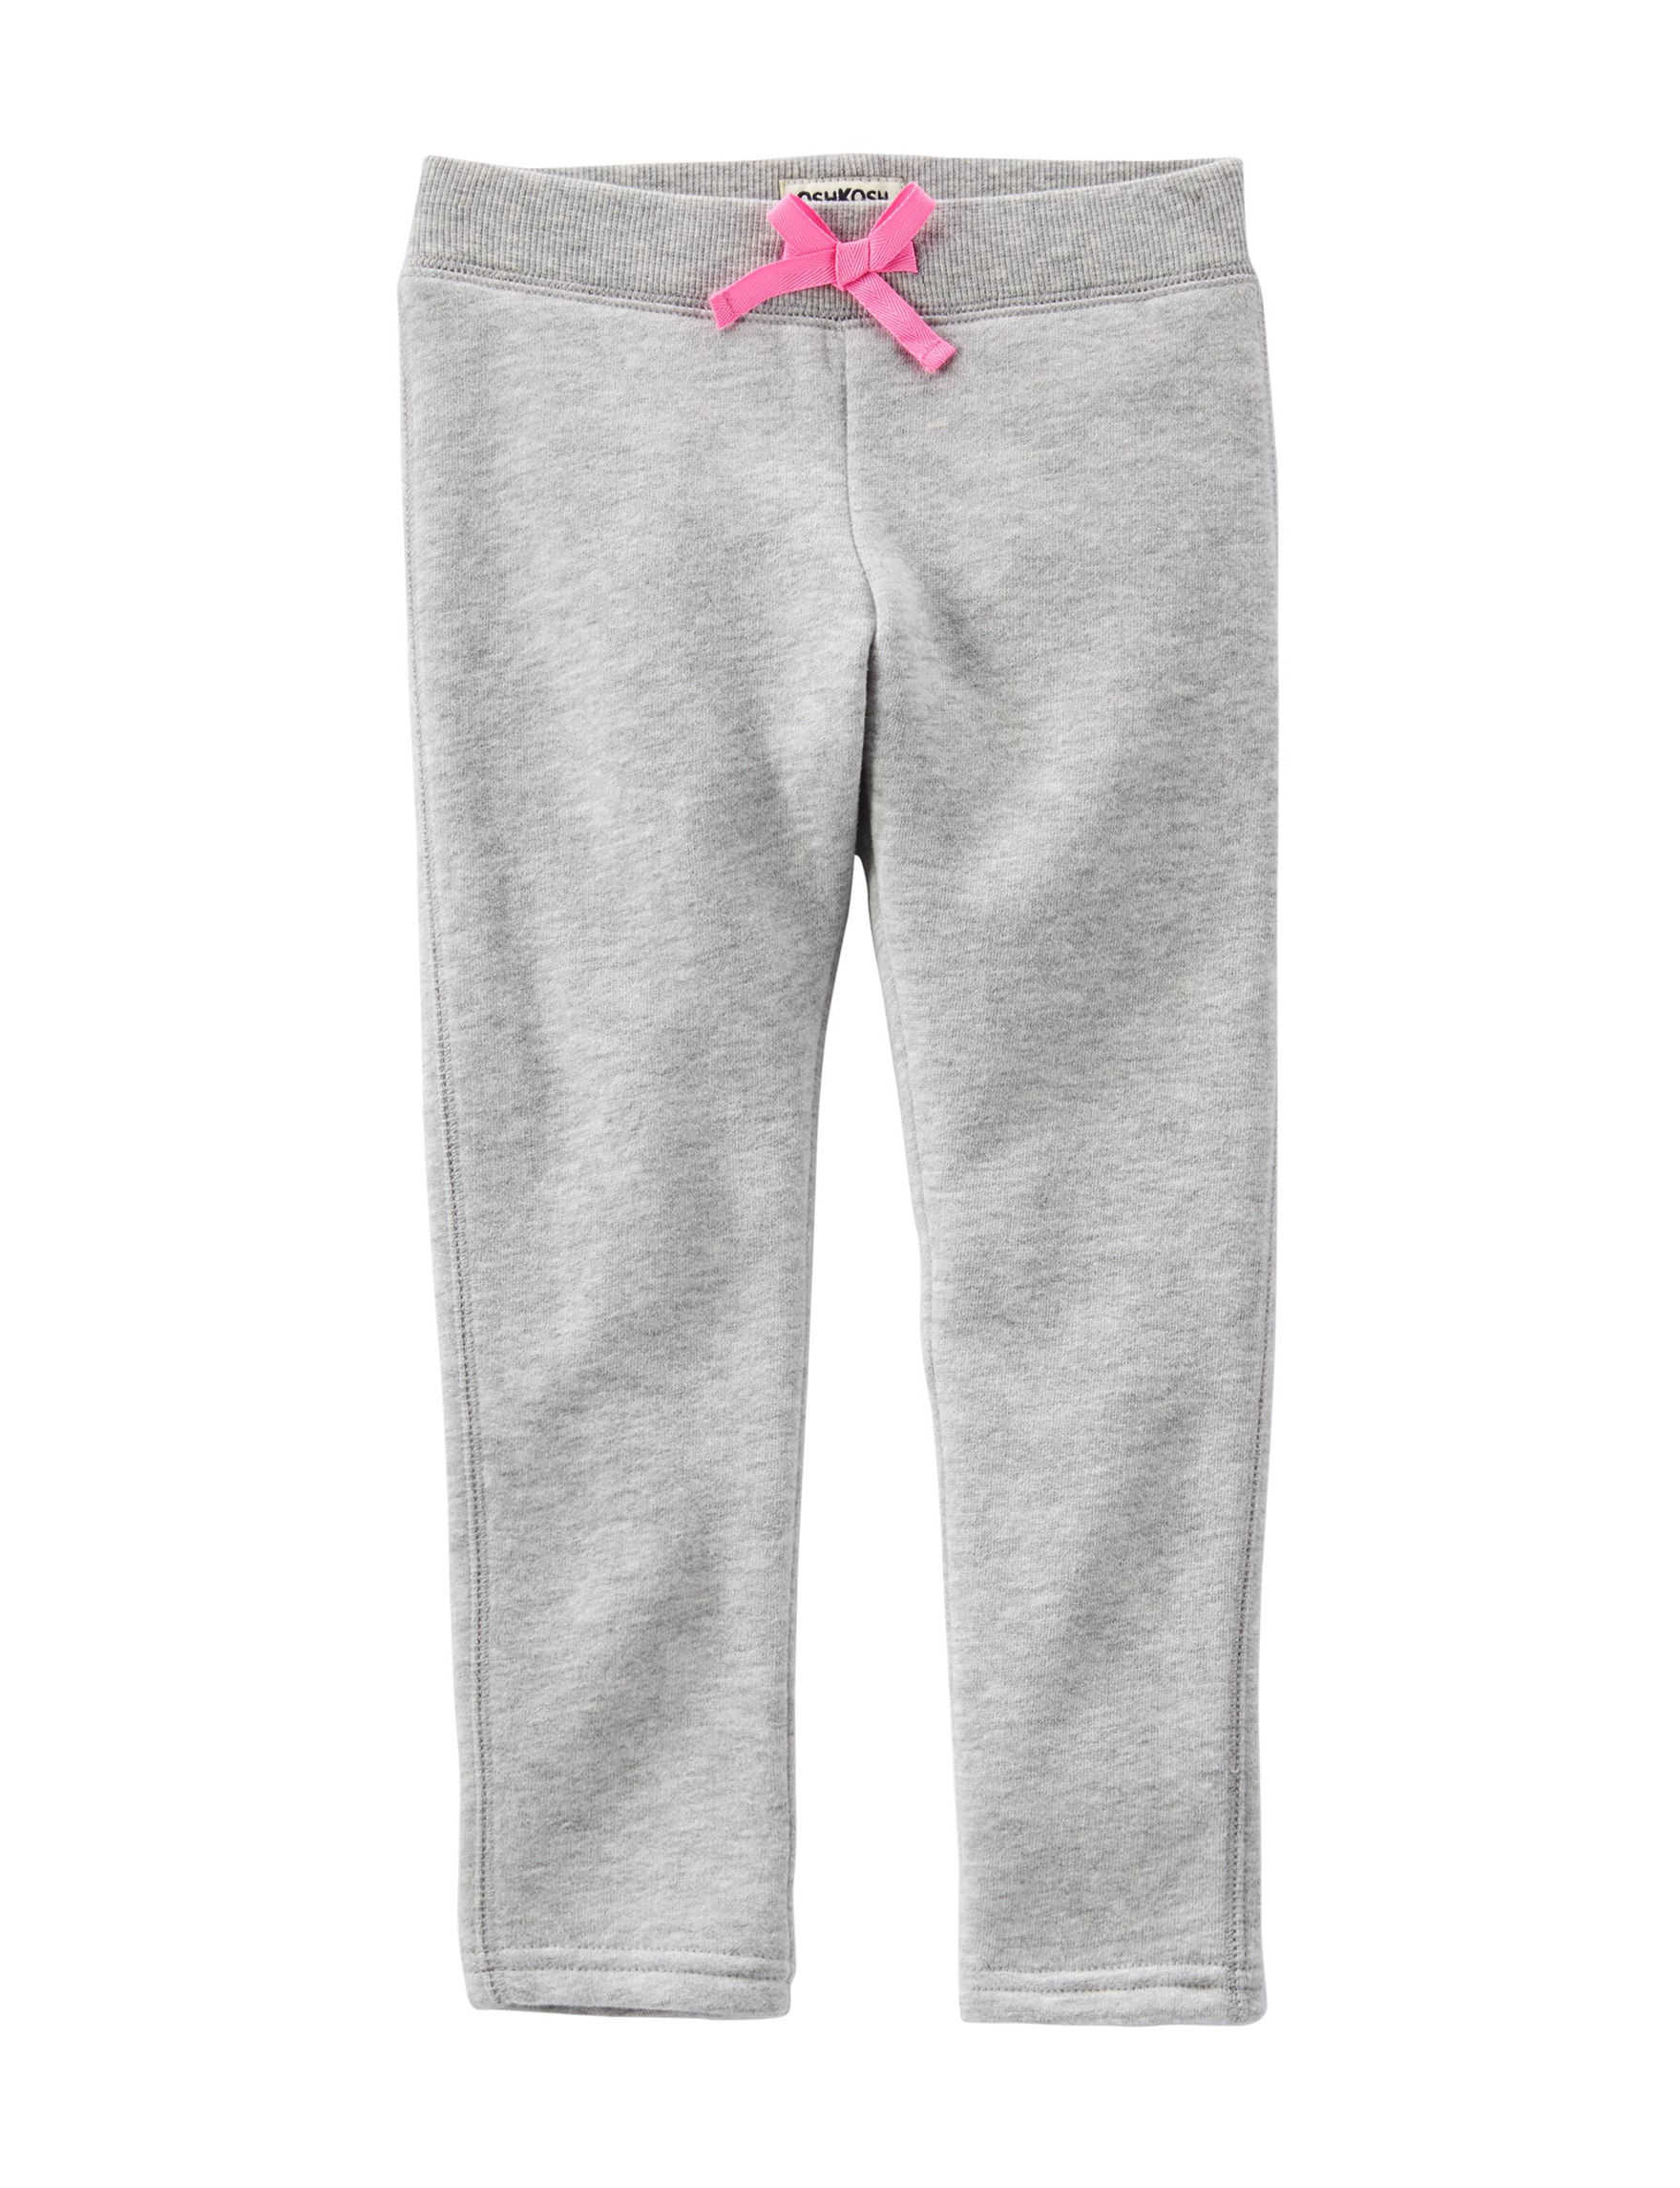 Oshkosh B'Gosh Heather Grey Loose